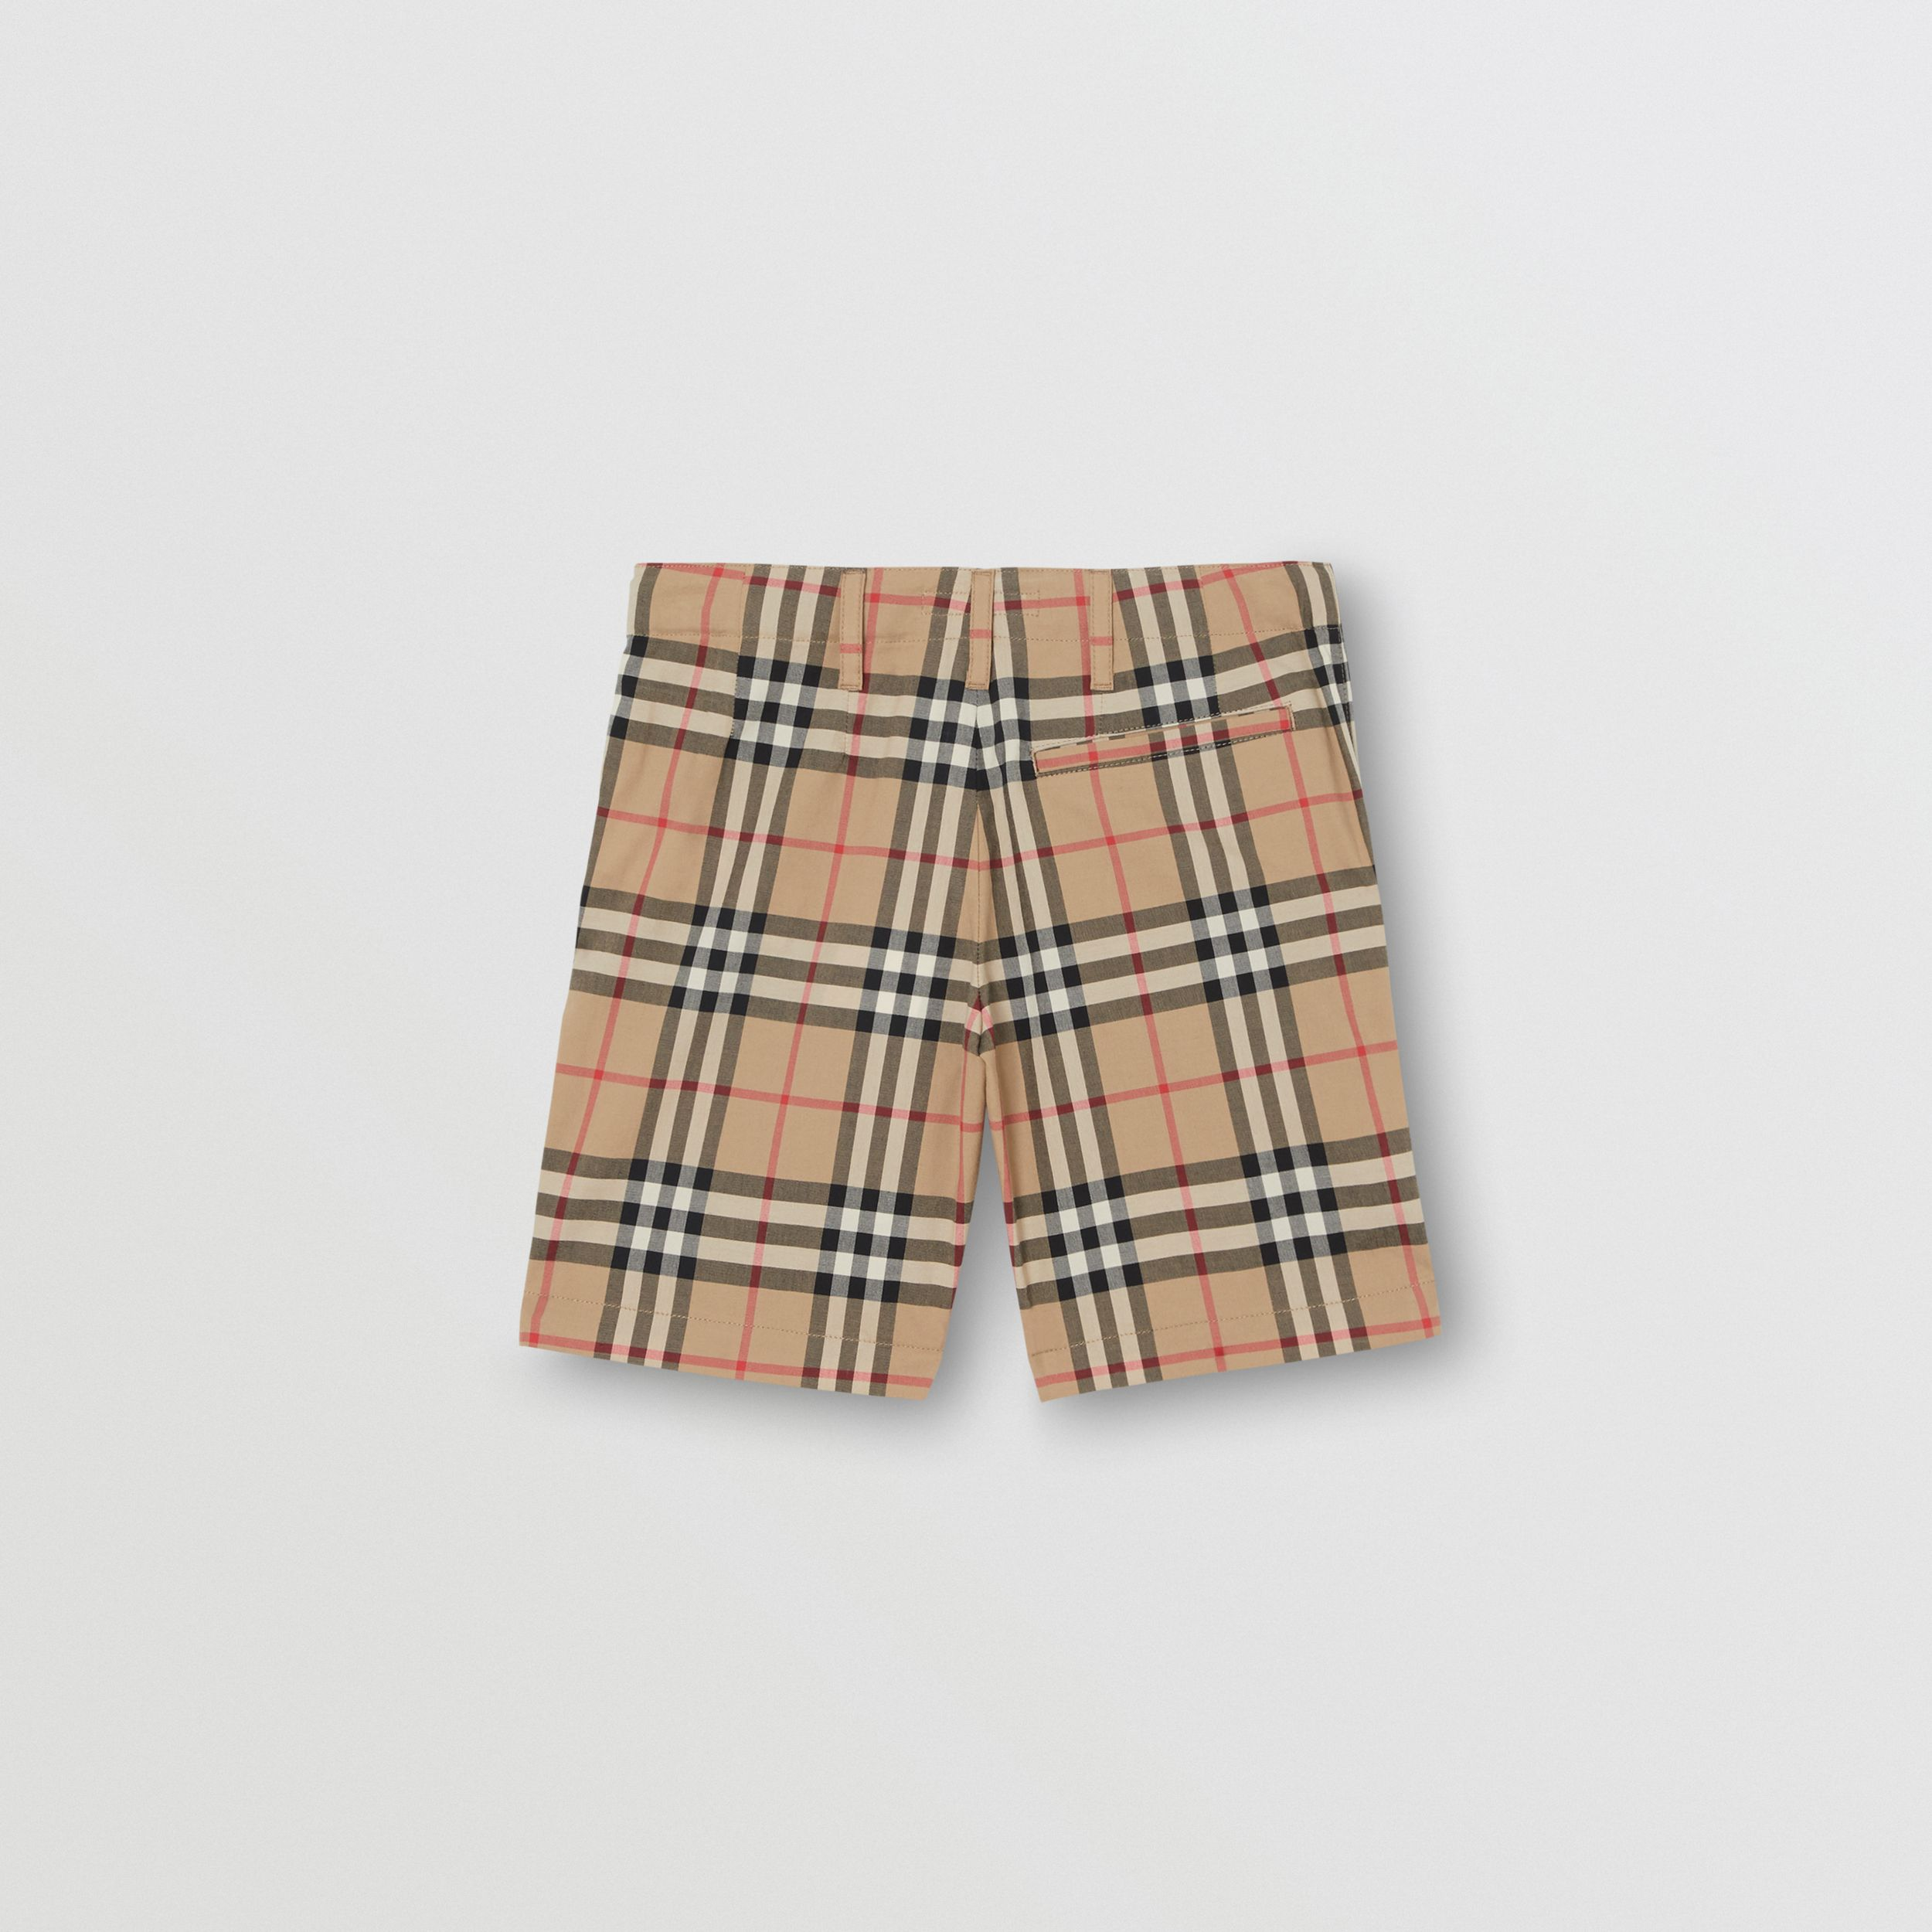 Vintage Check Cotton Tailored Shorts in Archive Beige | Burberry - 4